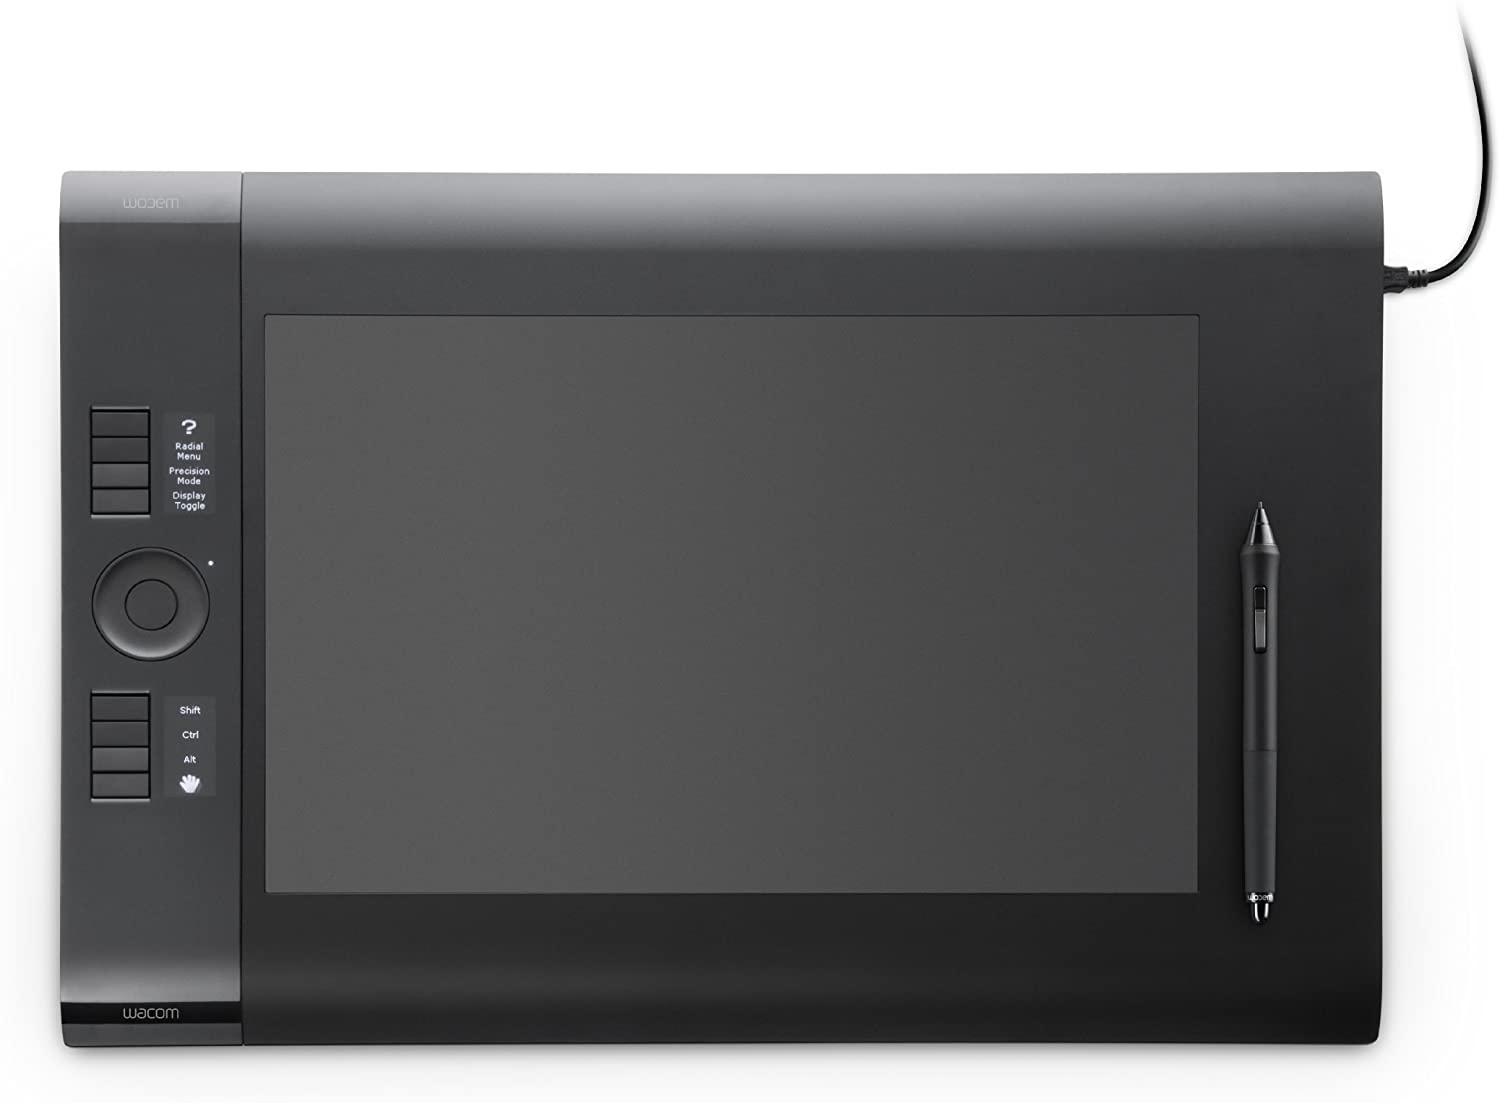 Refurbished Wacom Intuos4 Large Pen Tablet